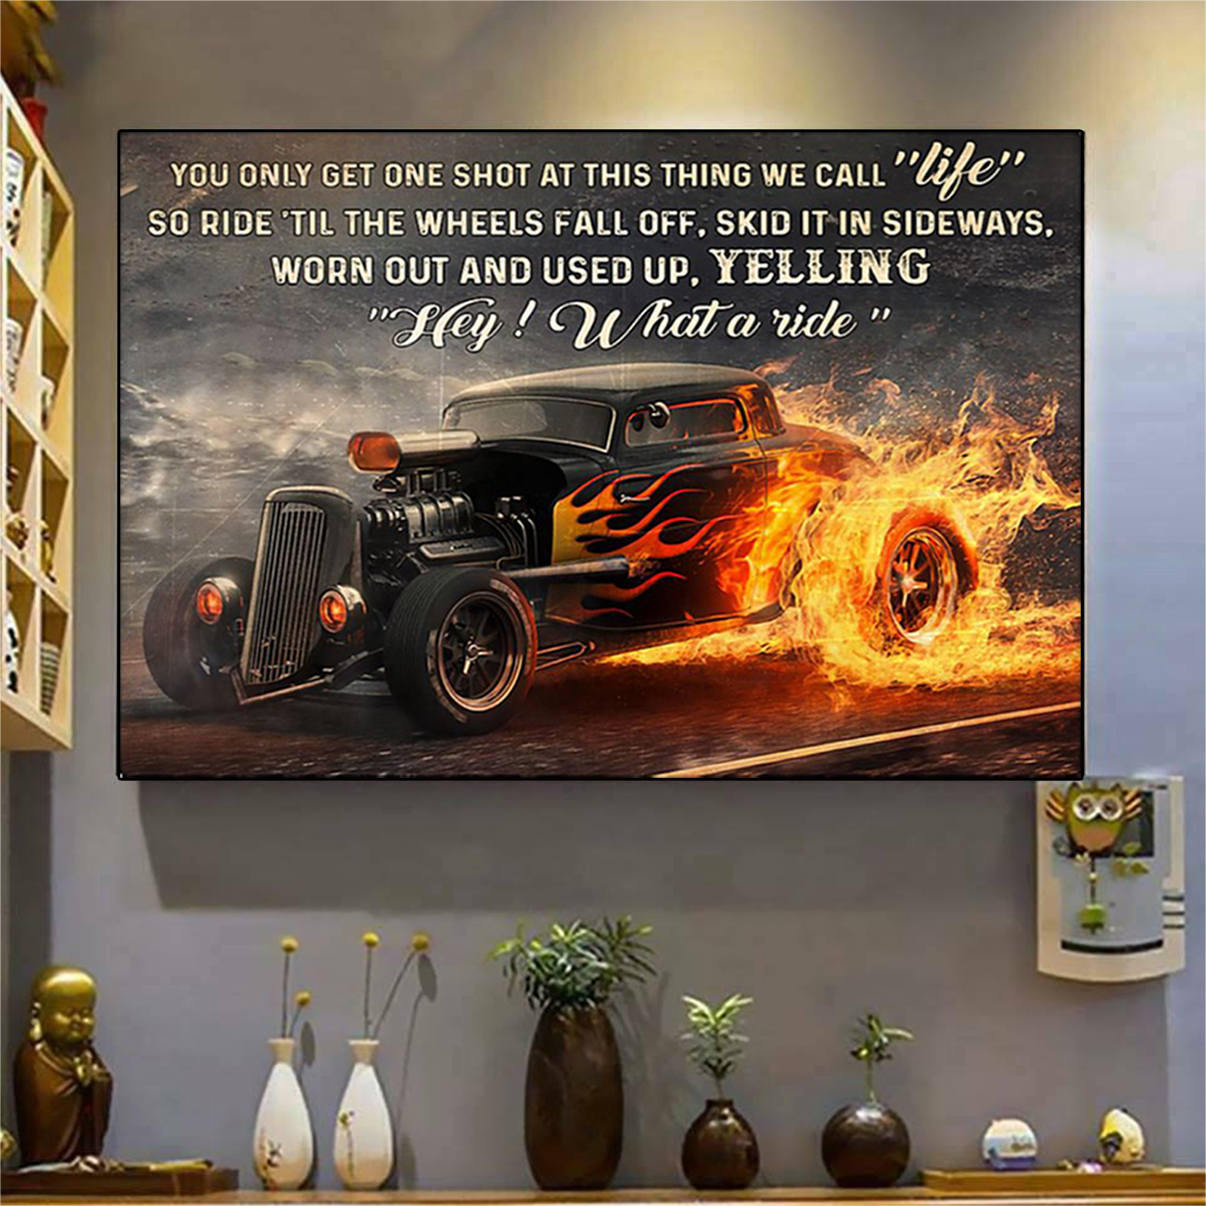 HOT ROD you only get one shot at this thing we call life poster A2